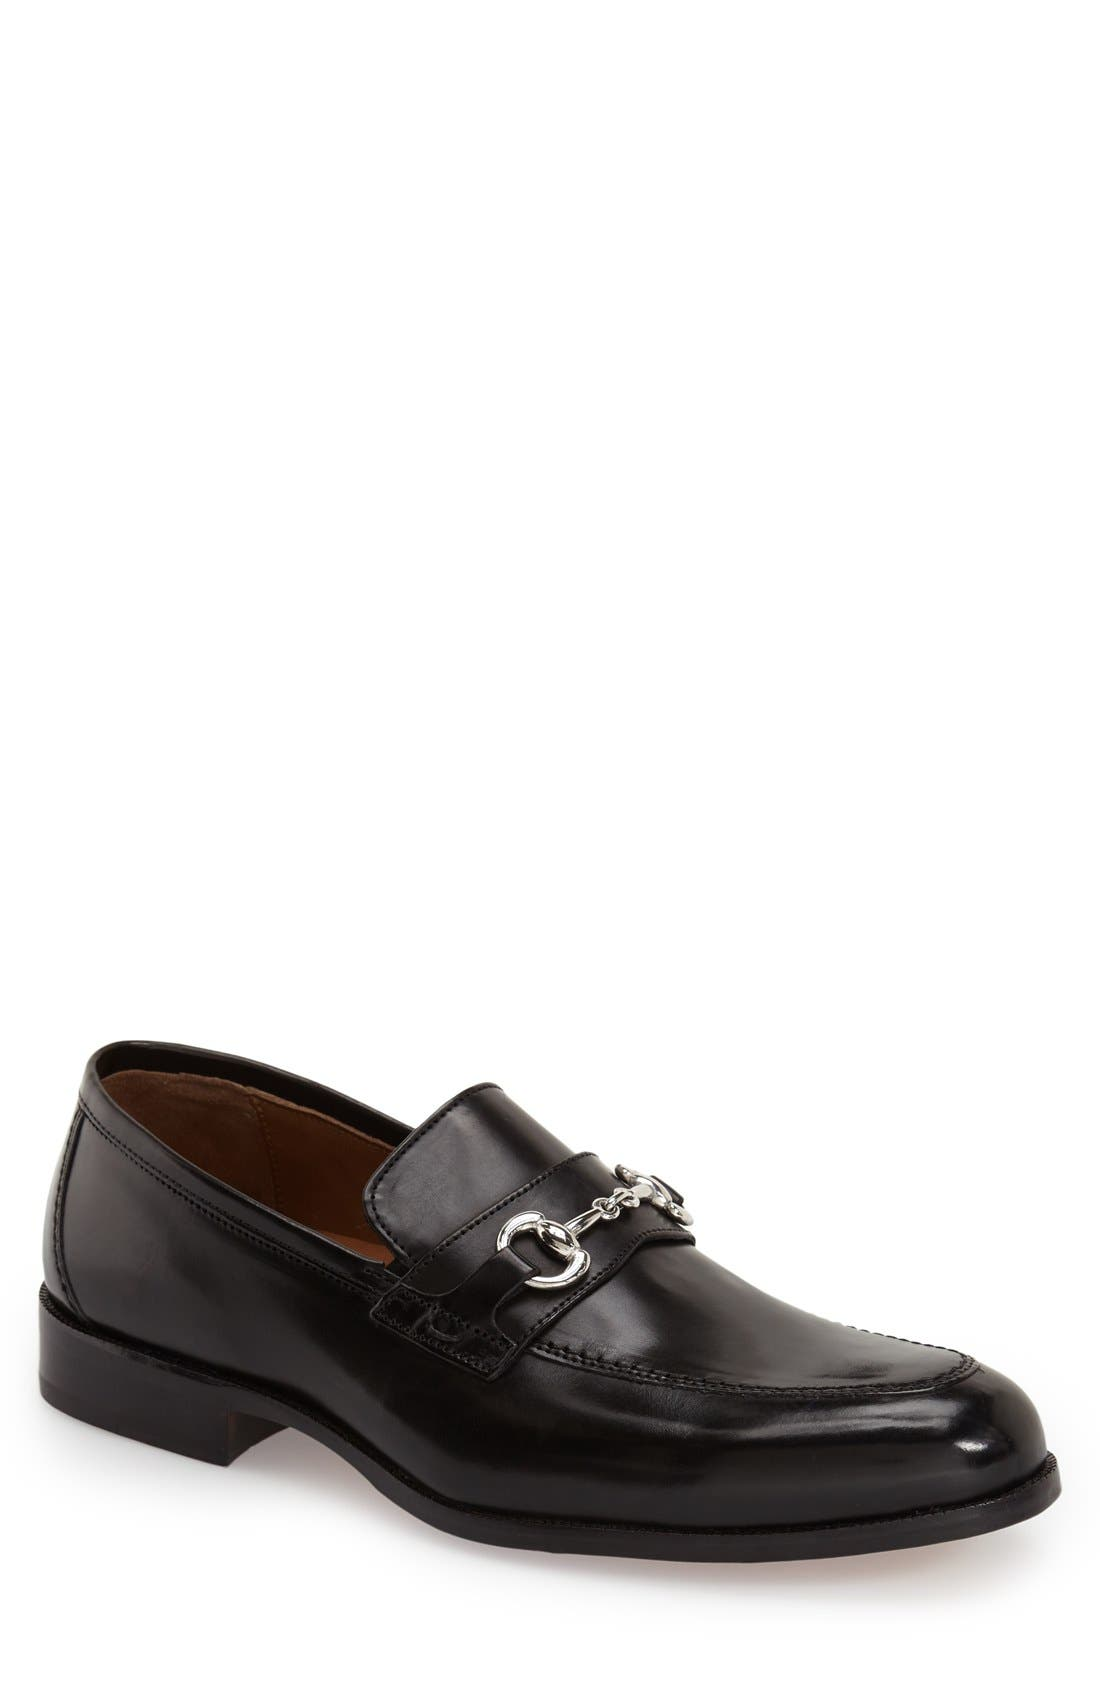 Johnston & Murphy 'Stratton' Bit Loafer (Men)